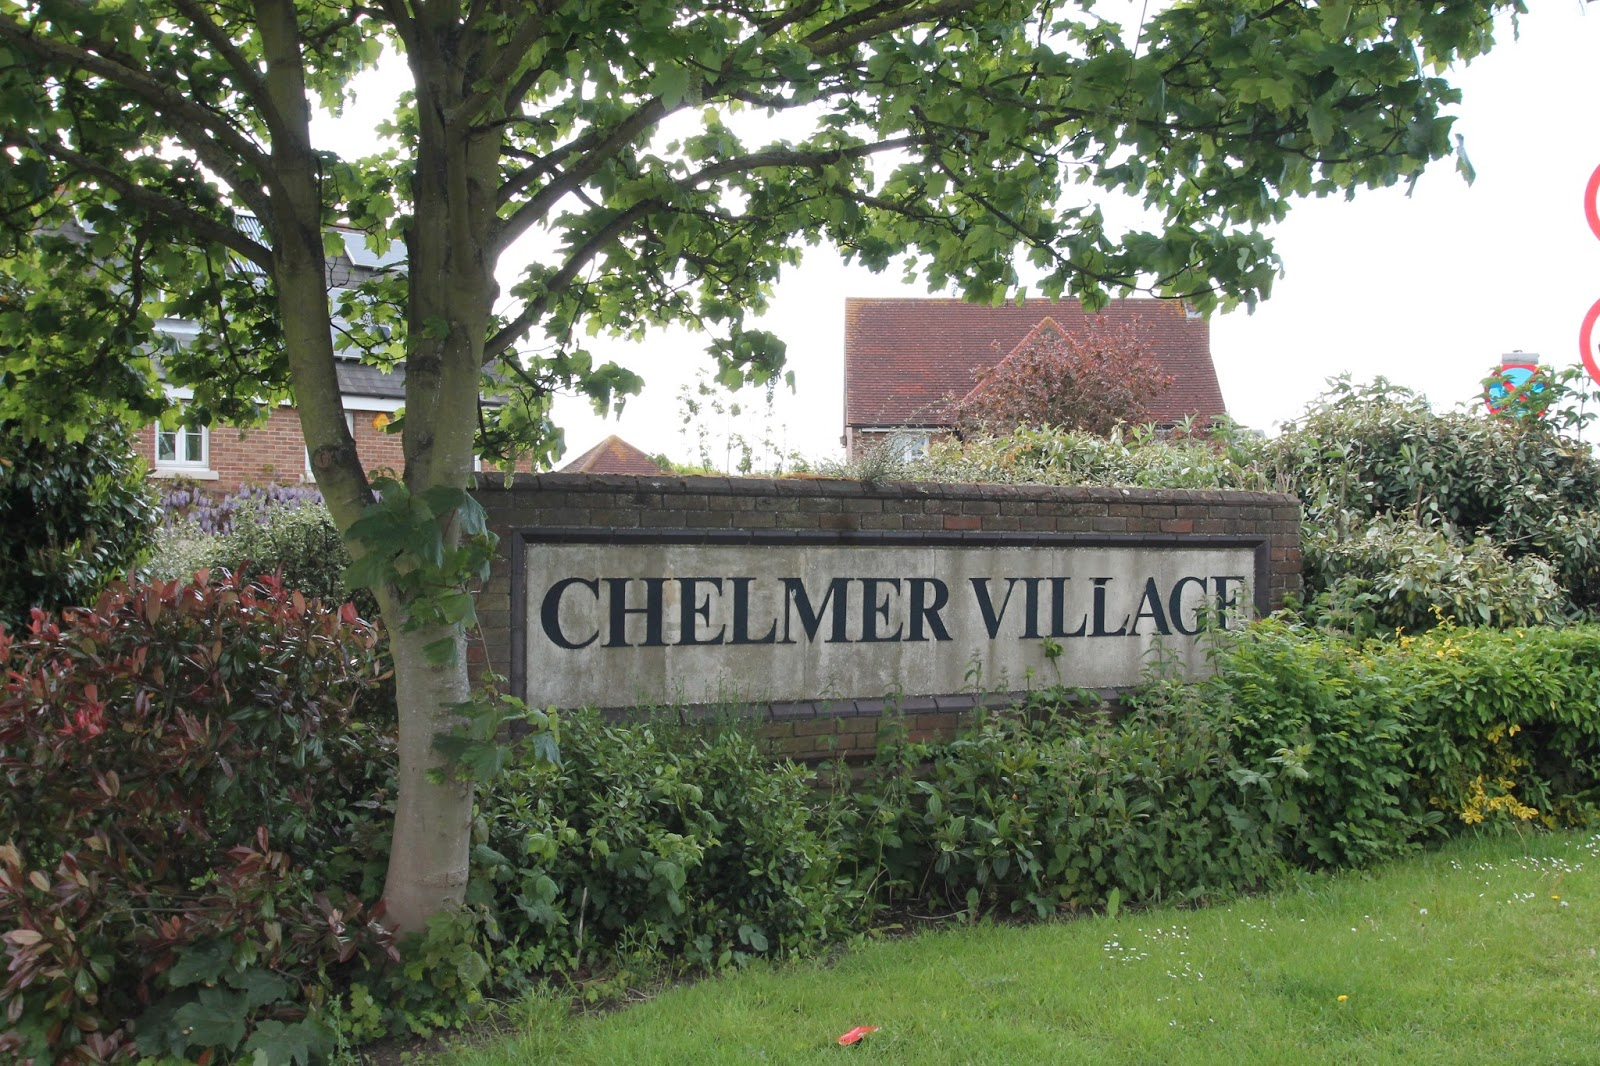 Chelmer Village and Beaulieu Park